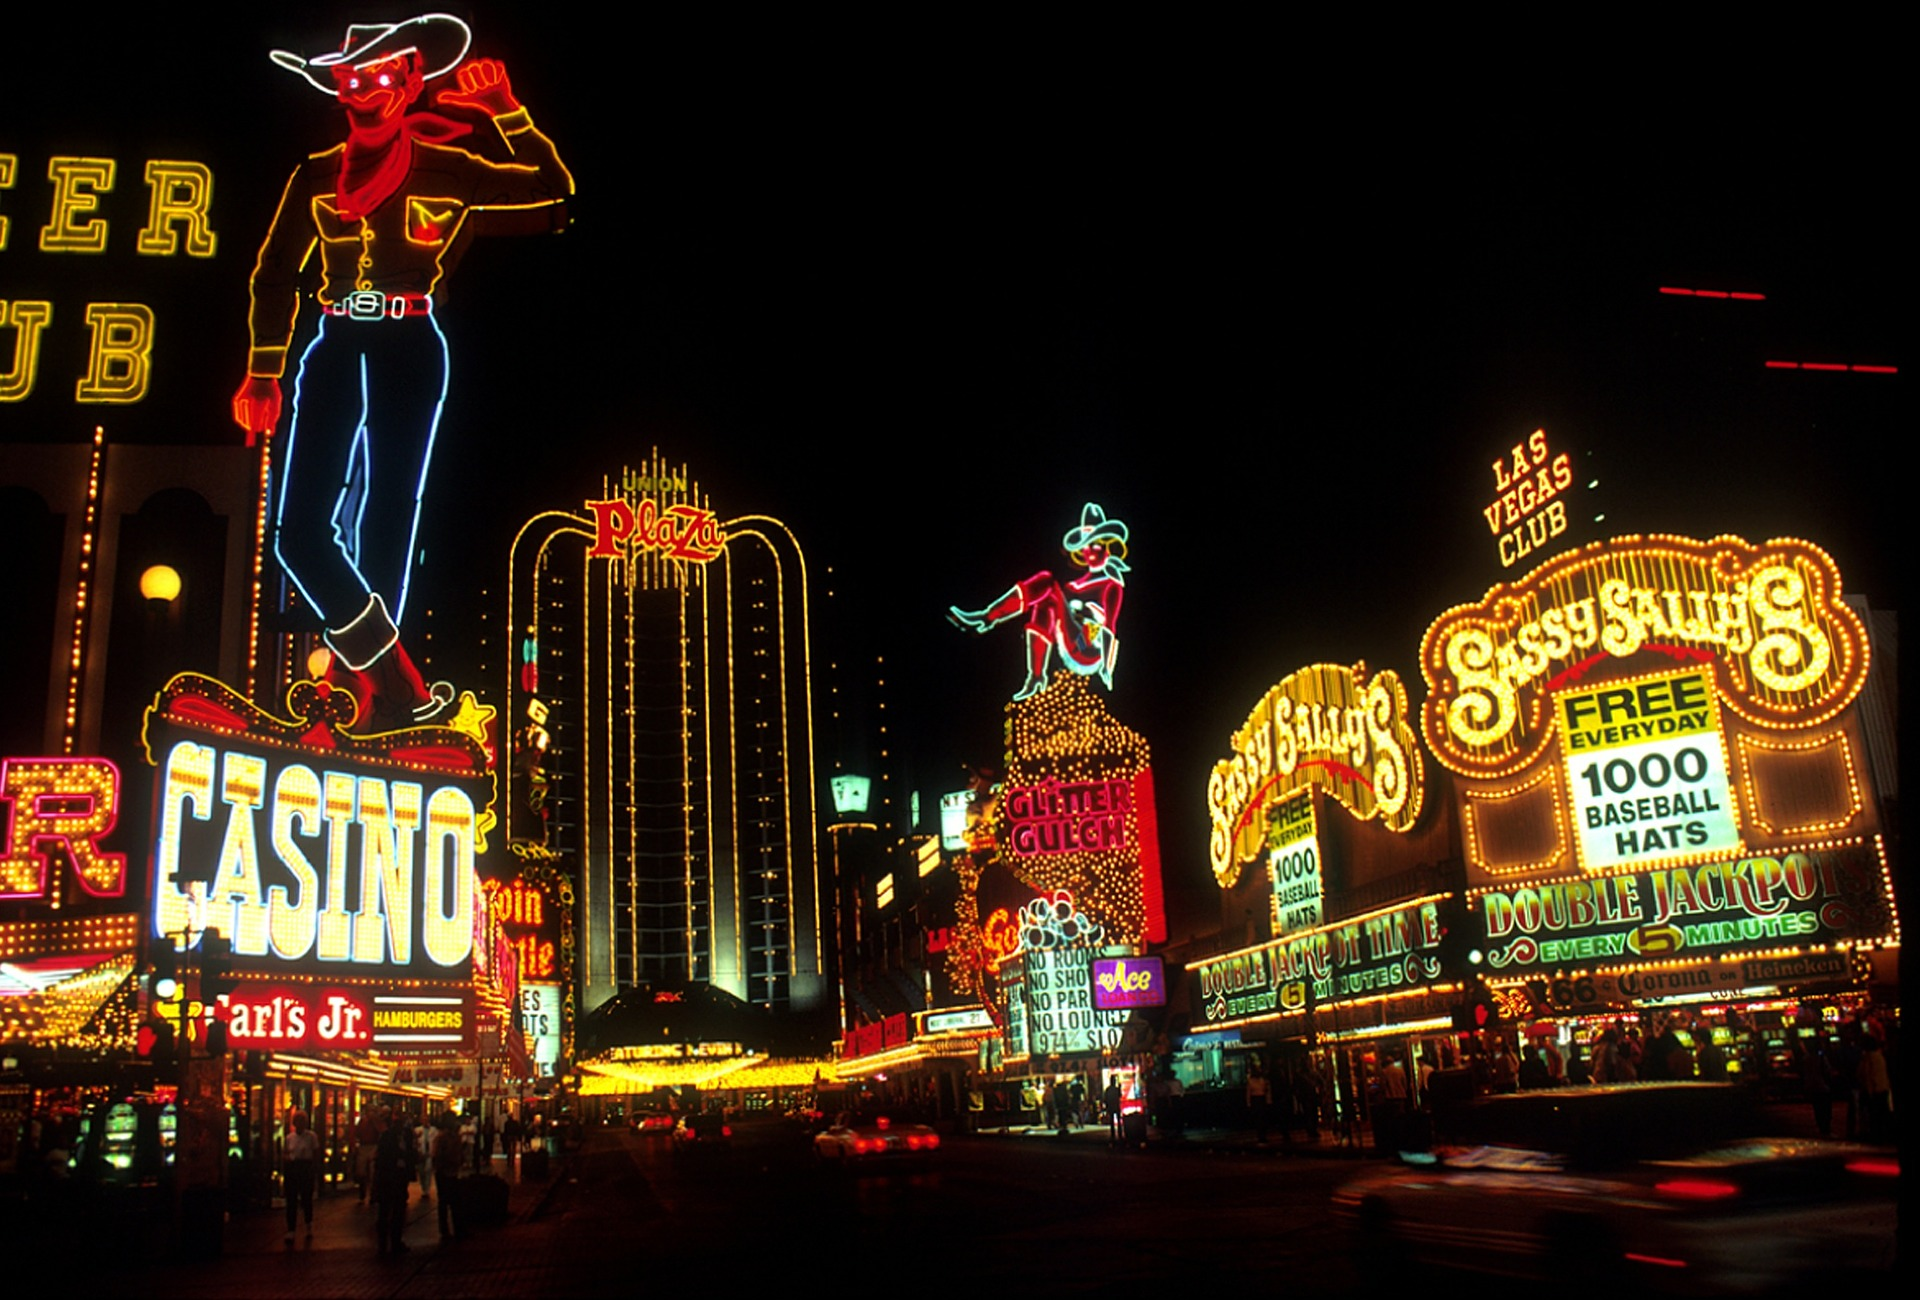 Neon Lights in Las Vegas at night